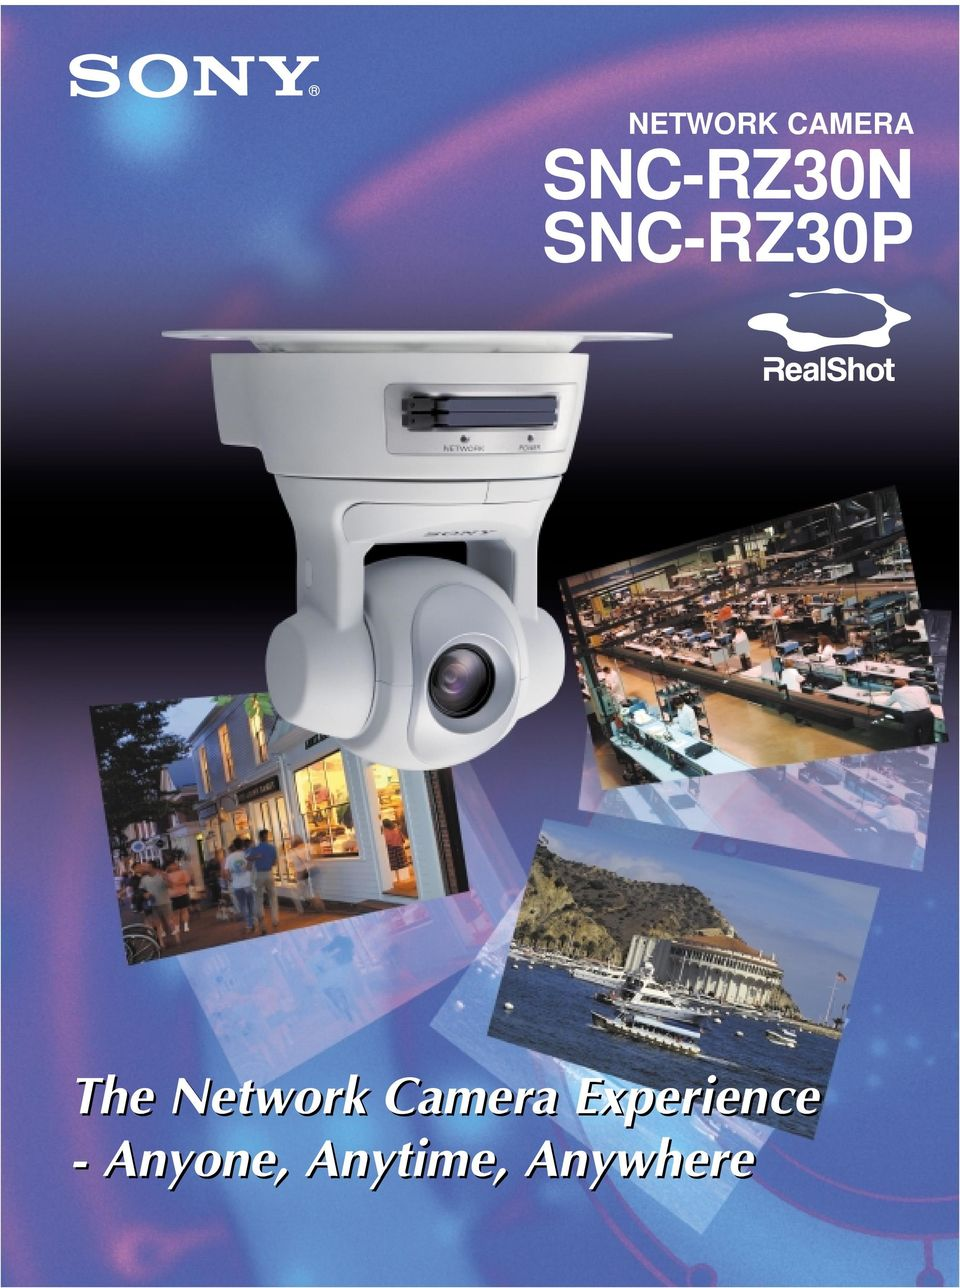 The Network Camera